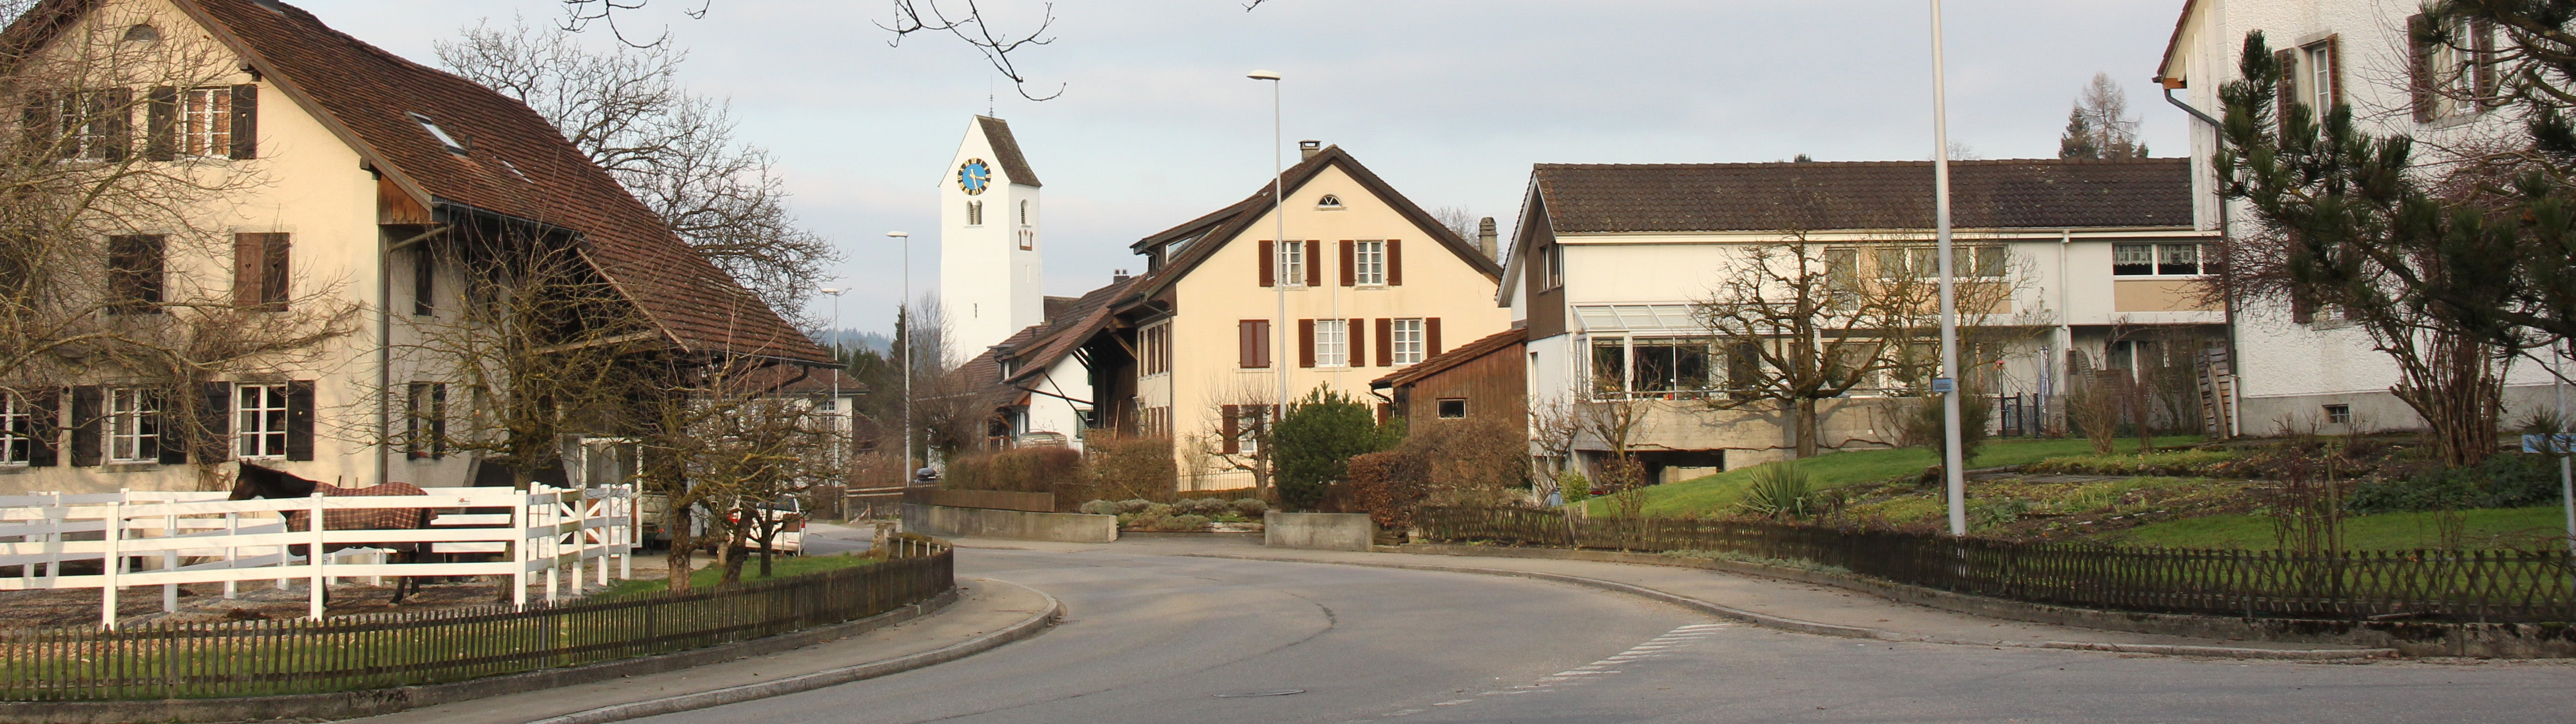 Ammerswil (AG)